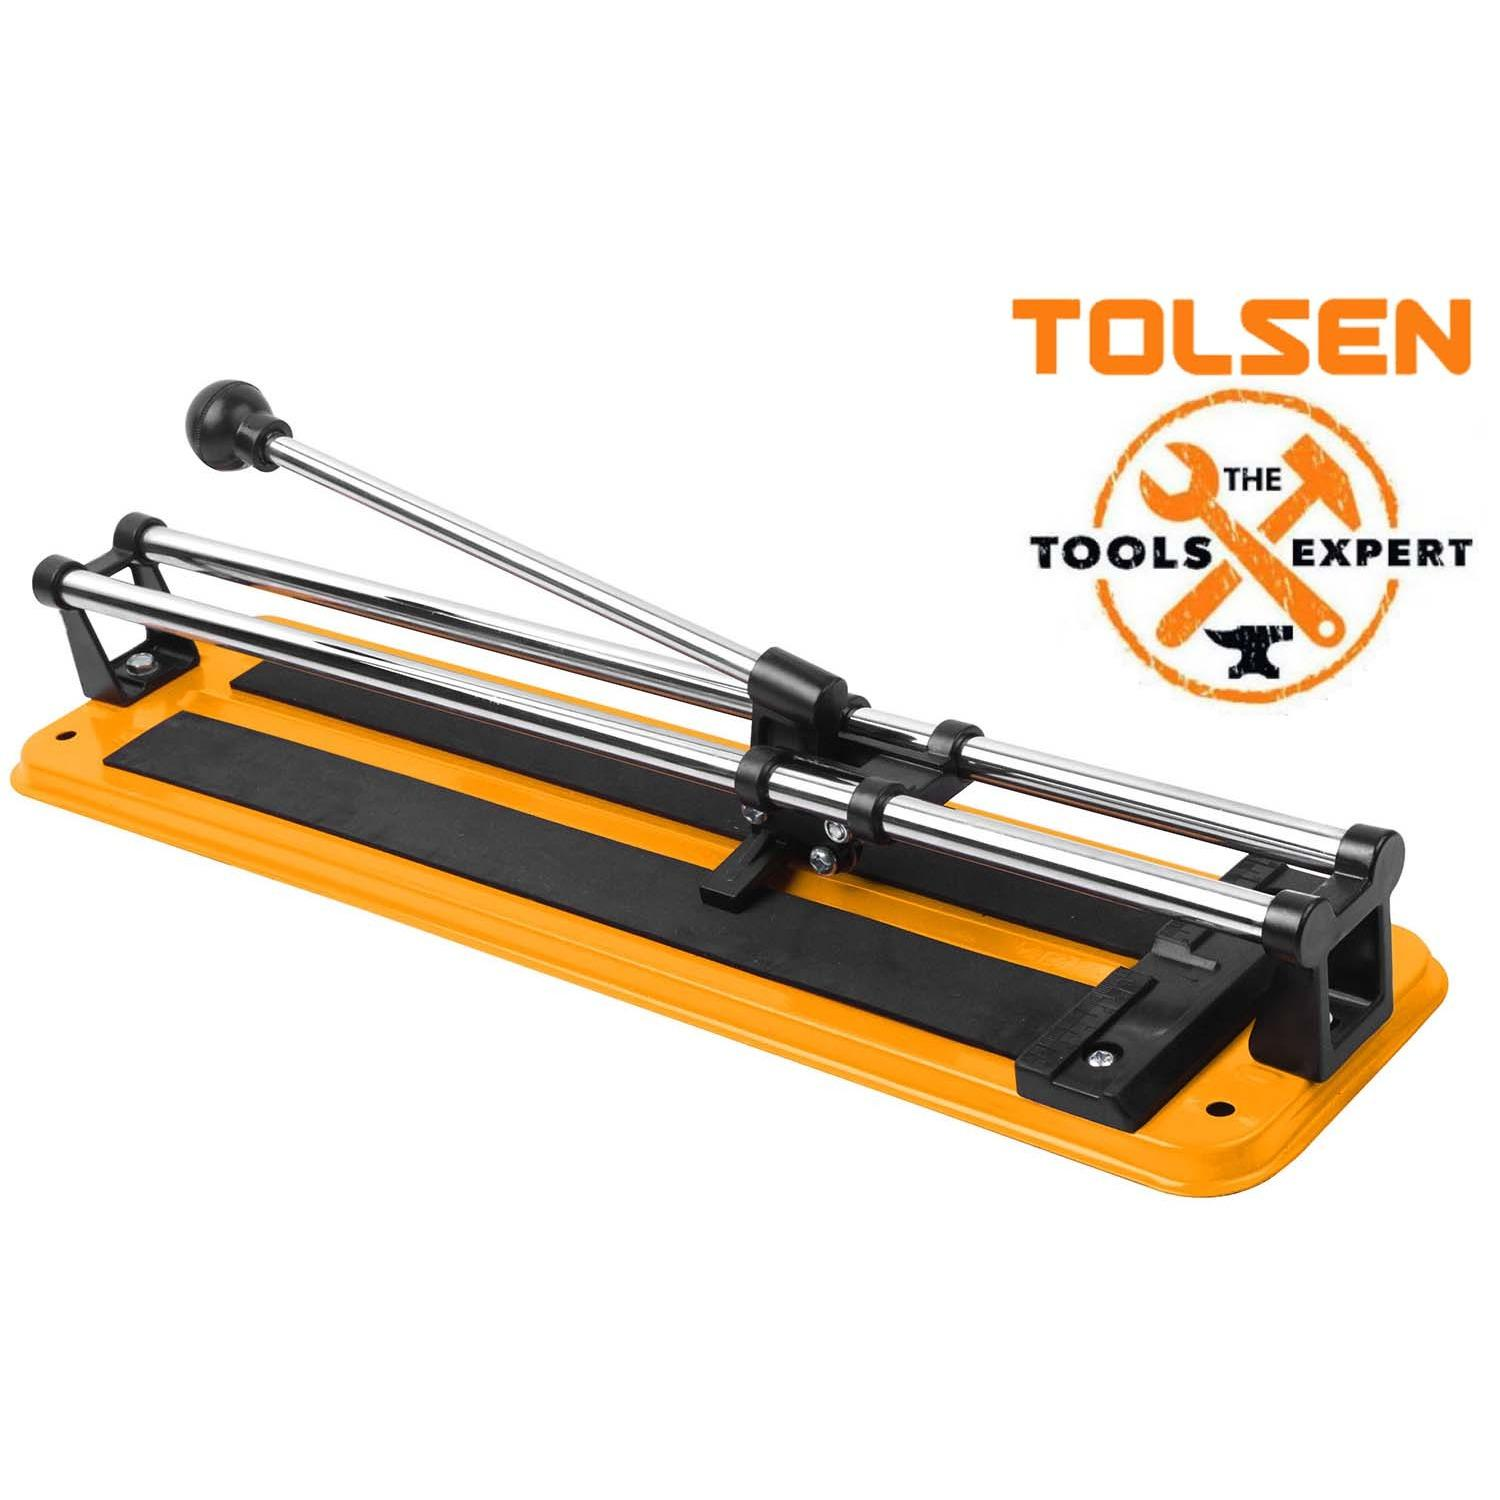 Tolsen Tile Cutter (400mm) By Tool Experts.